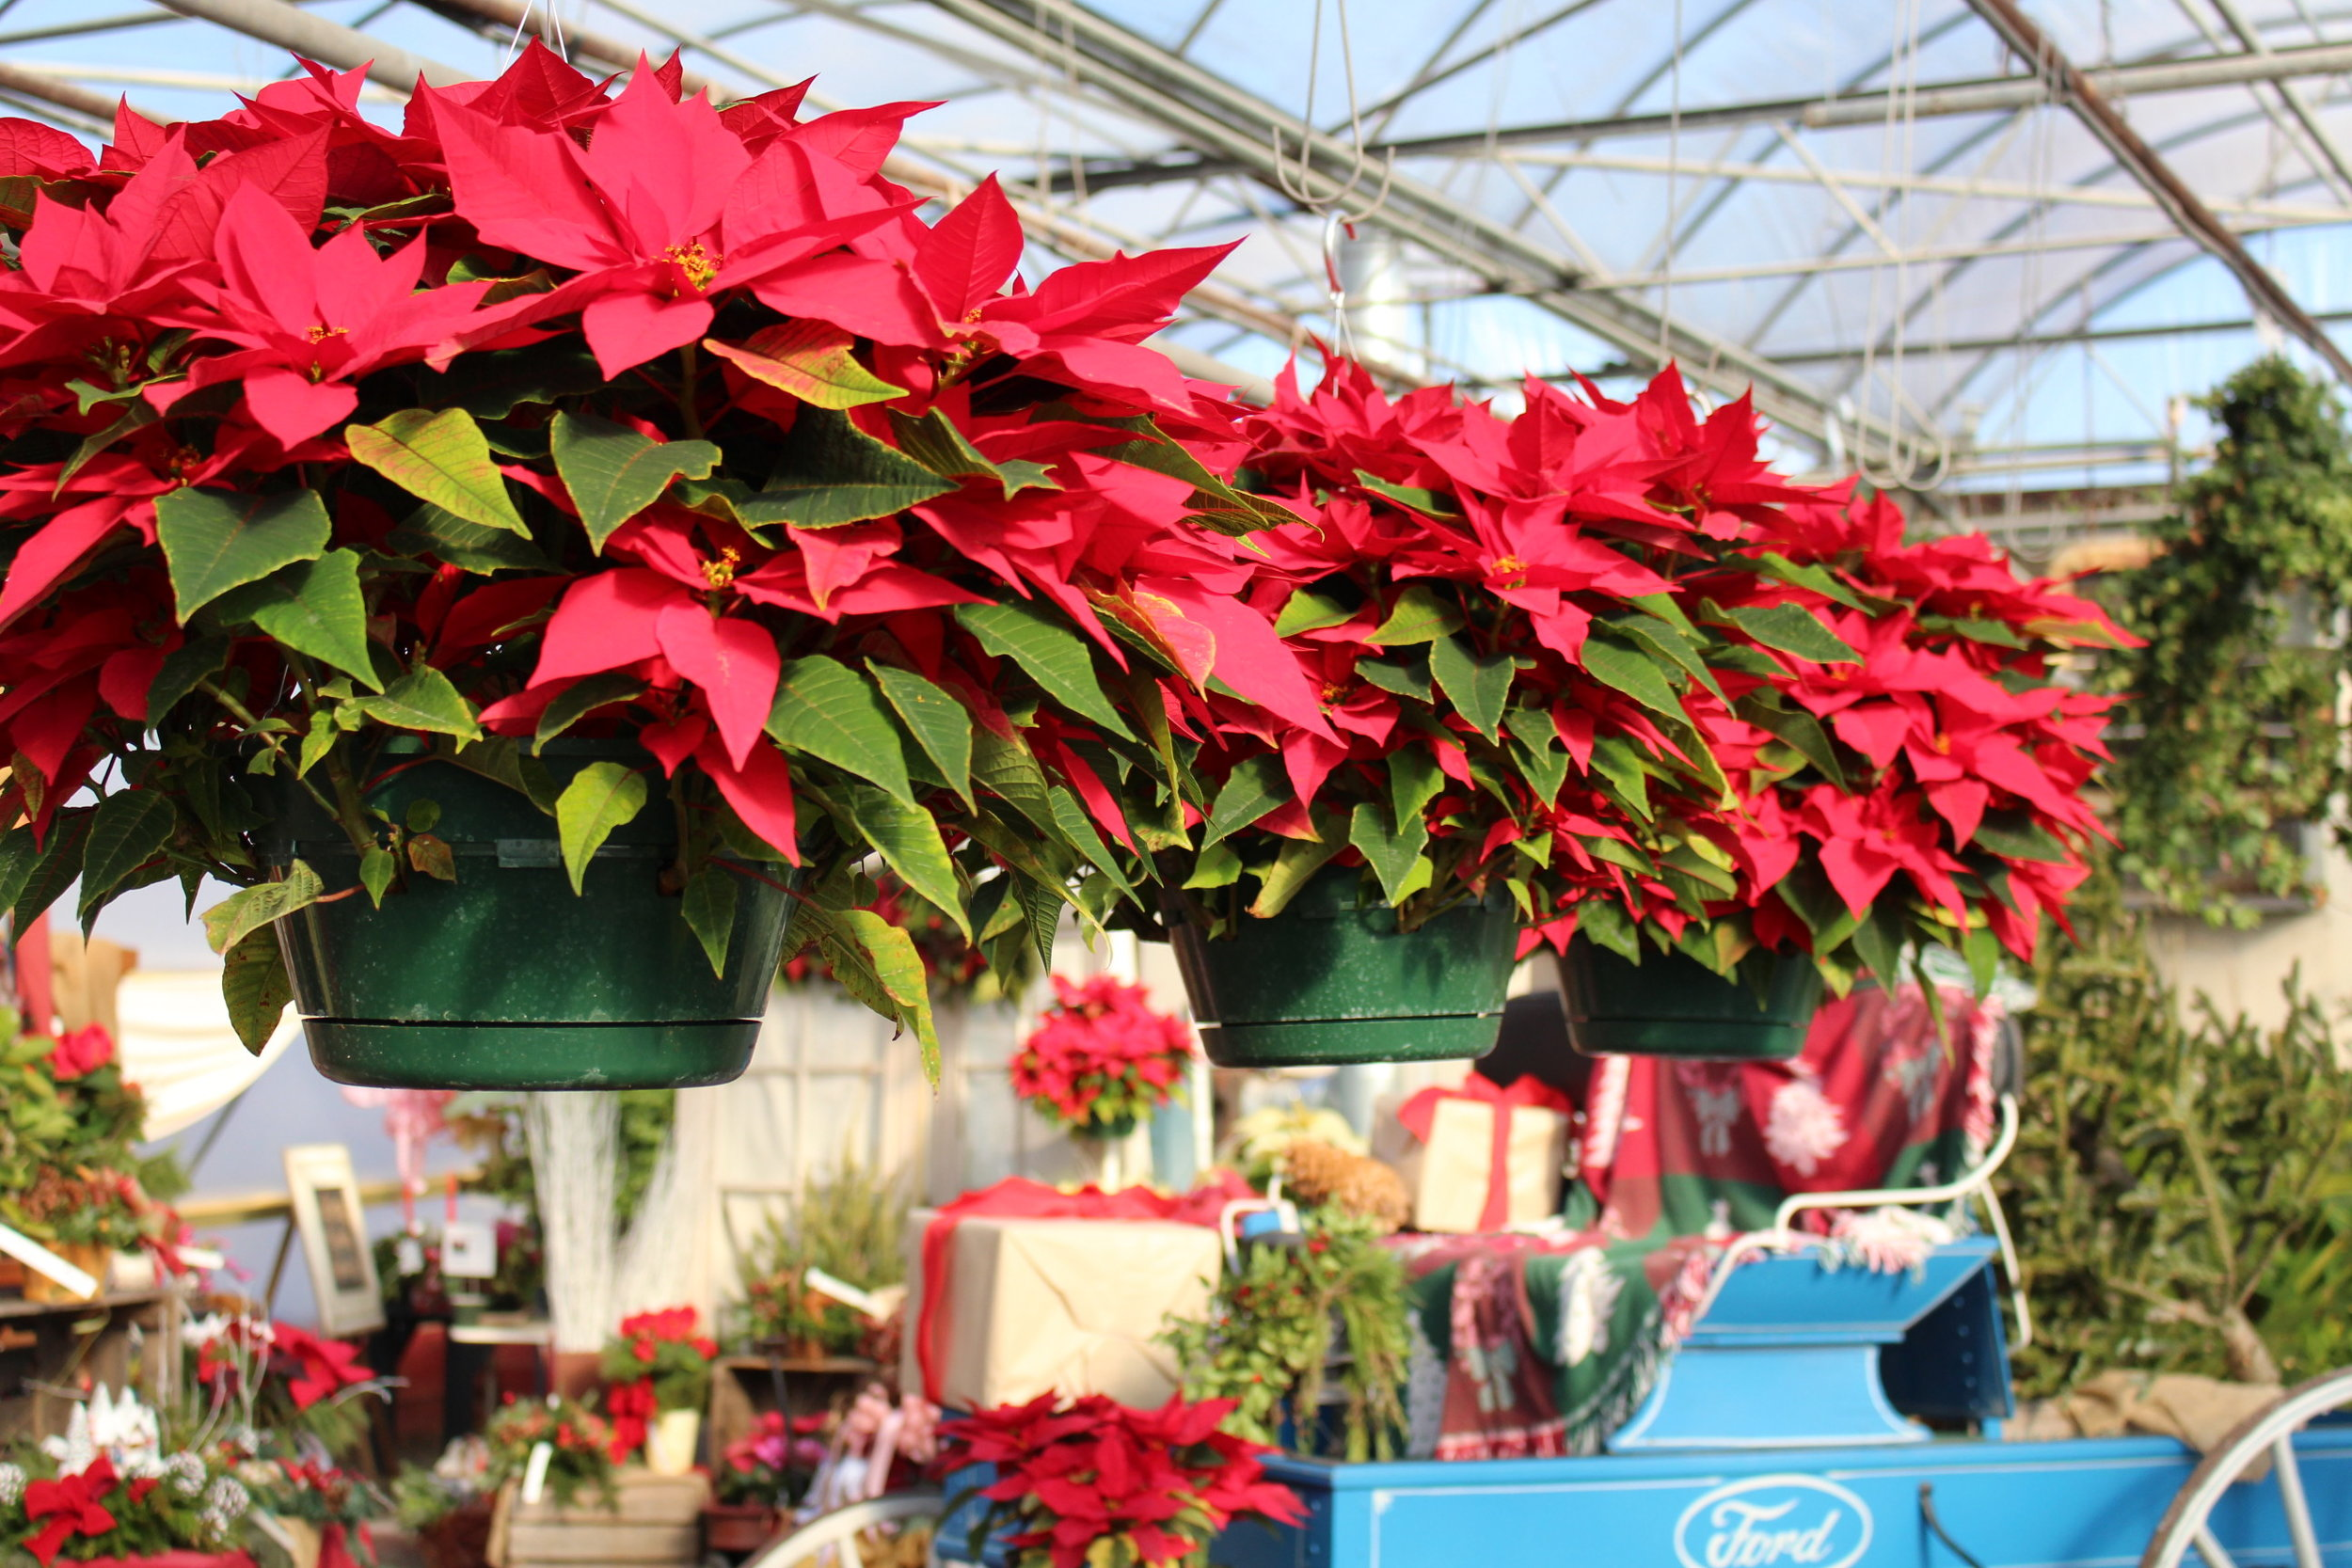 P- Poinsettias hanging in green house.JPG